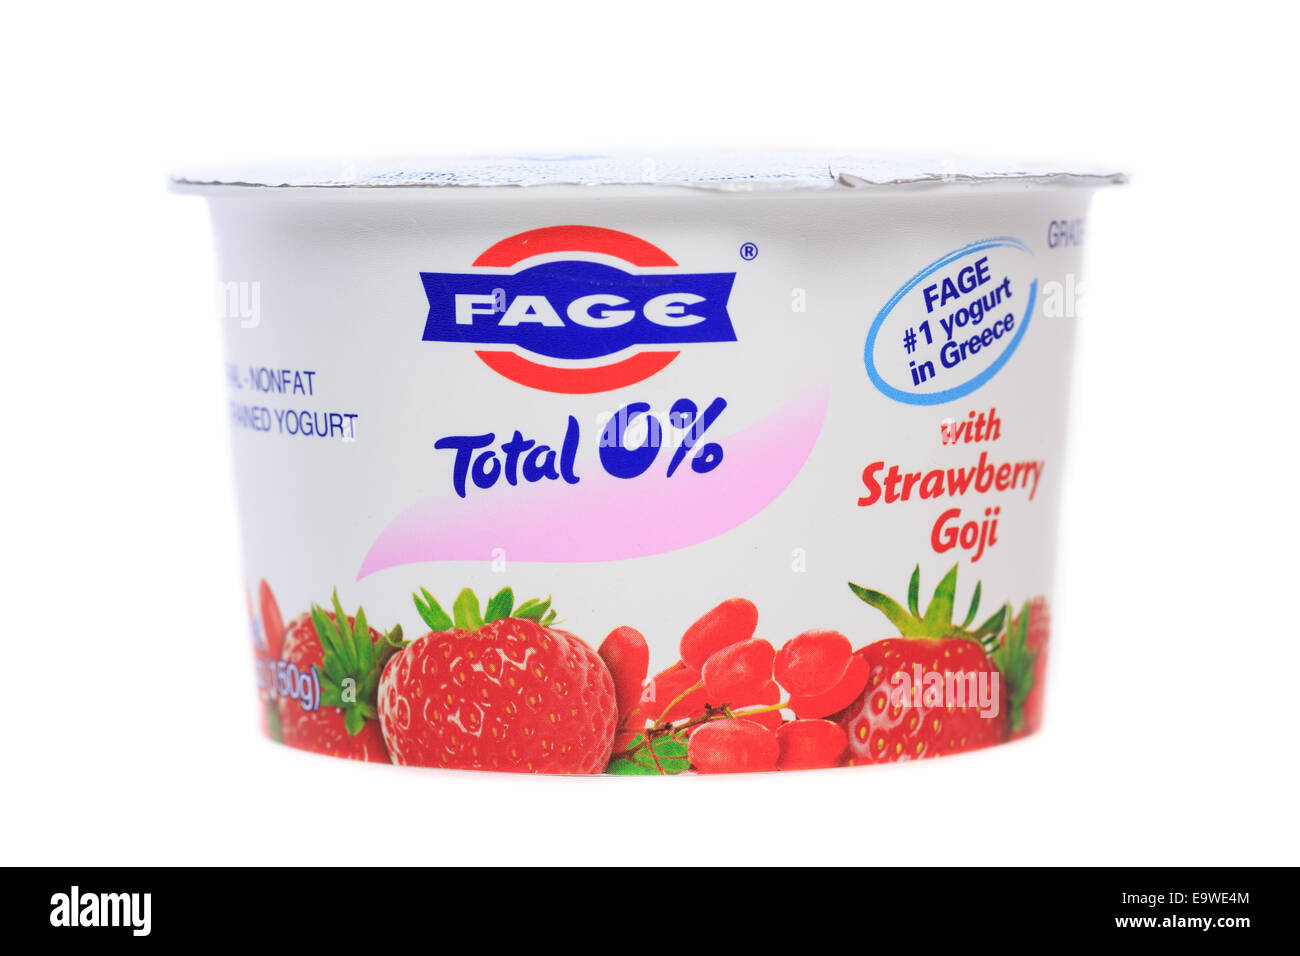 Fage Total 0% nonfat greek strained yogurt cup Strawberry Goji - Stock Image